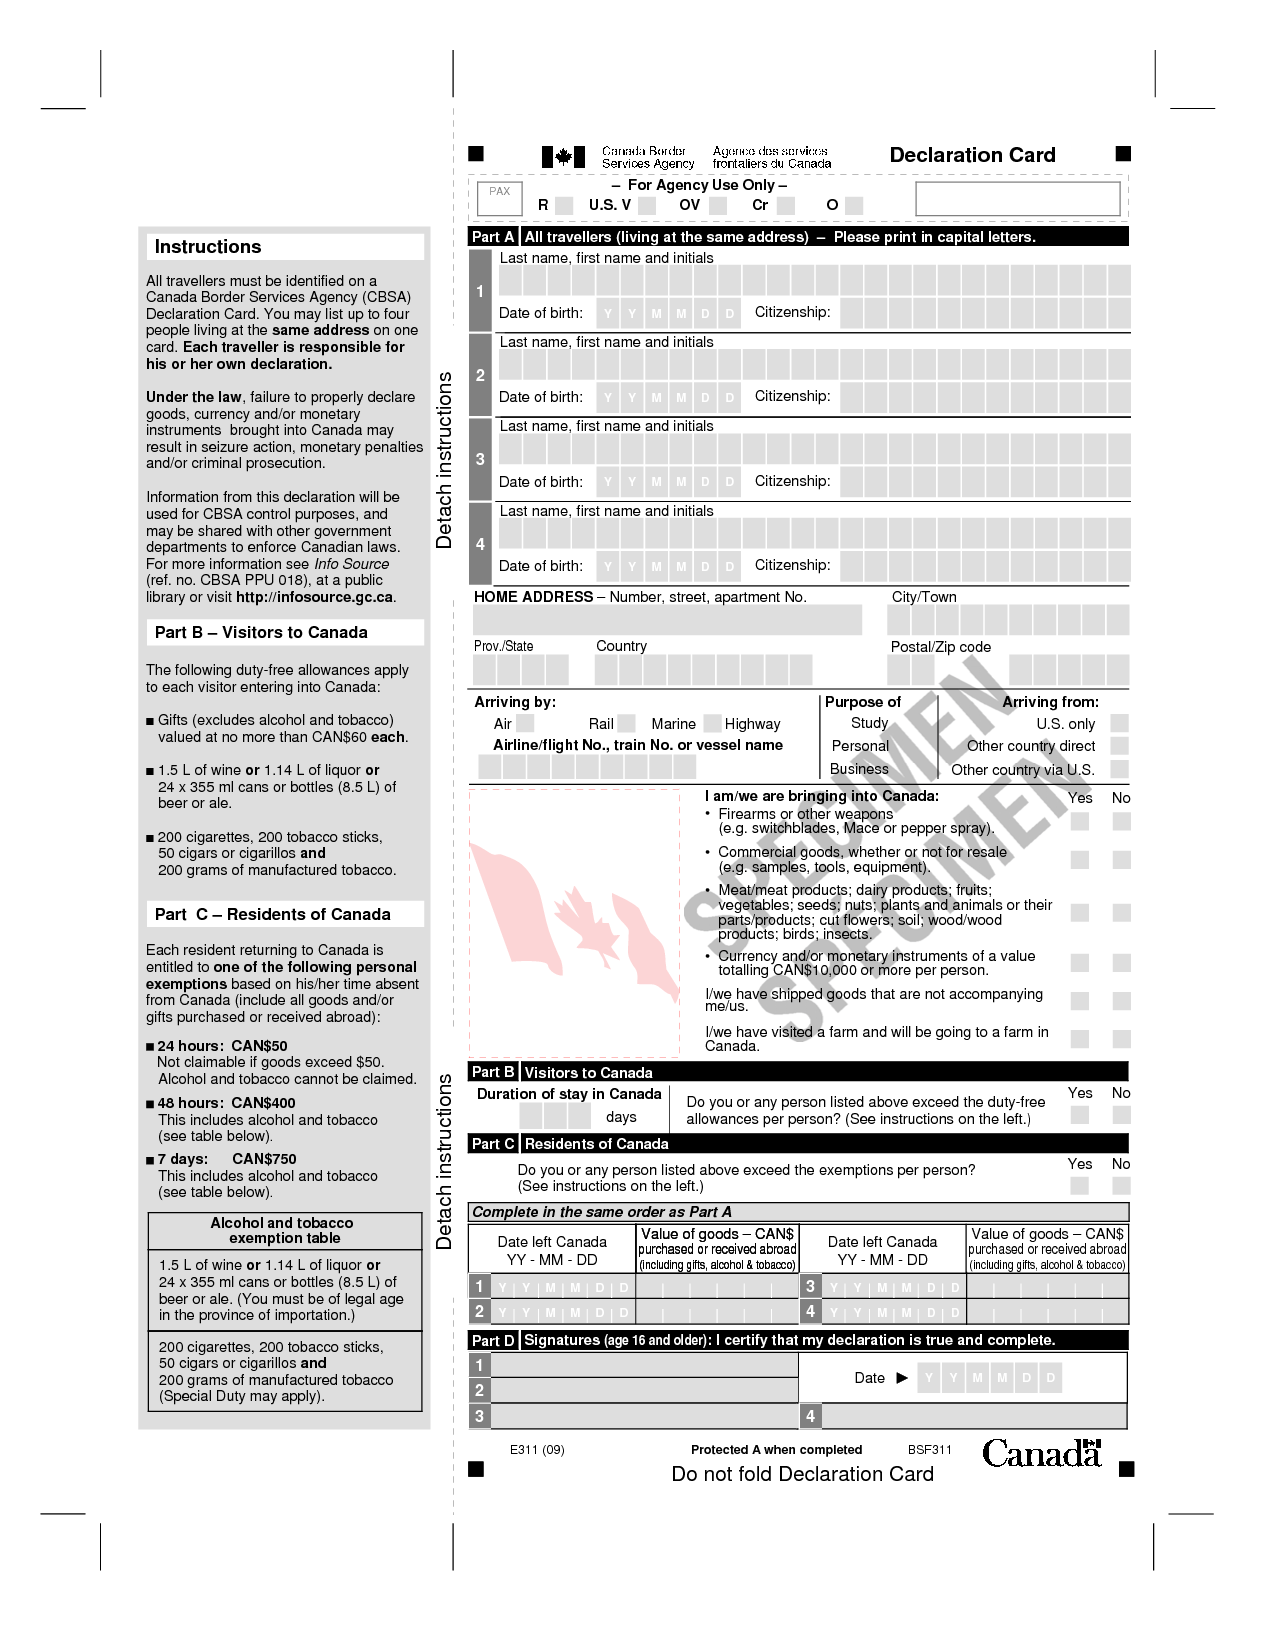 canada immigration form while landing